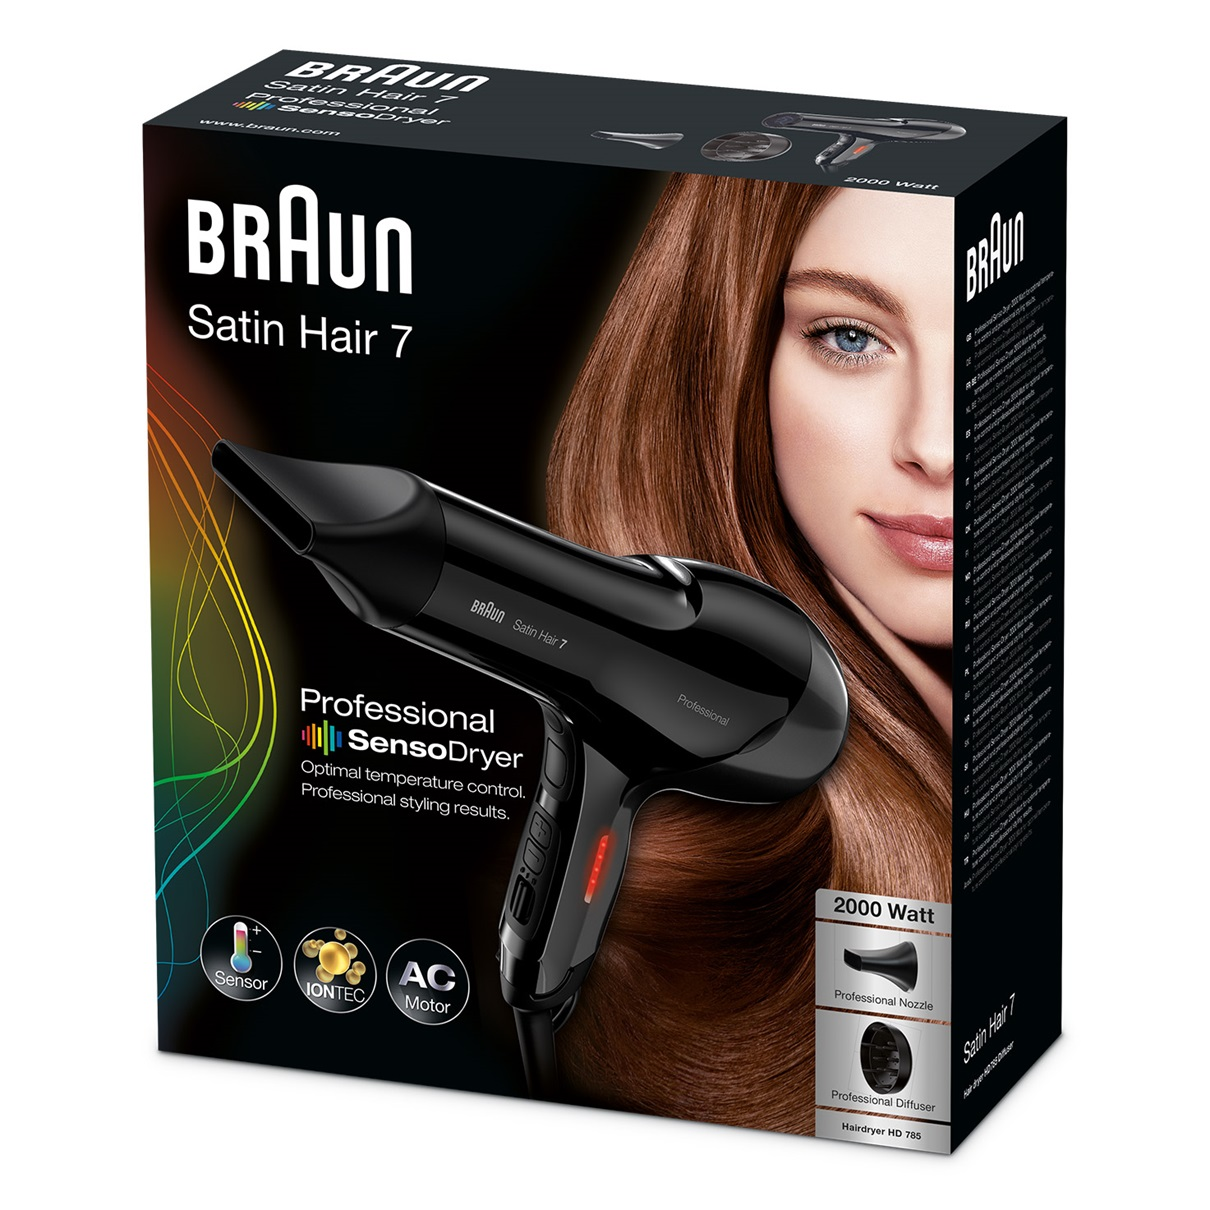 Asciugacapelli Satin Hair 7 HD785 SensoDryer con IONTEC